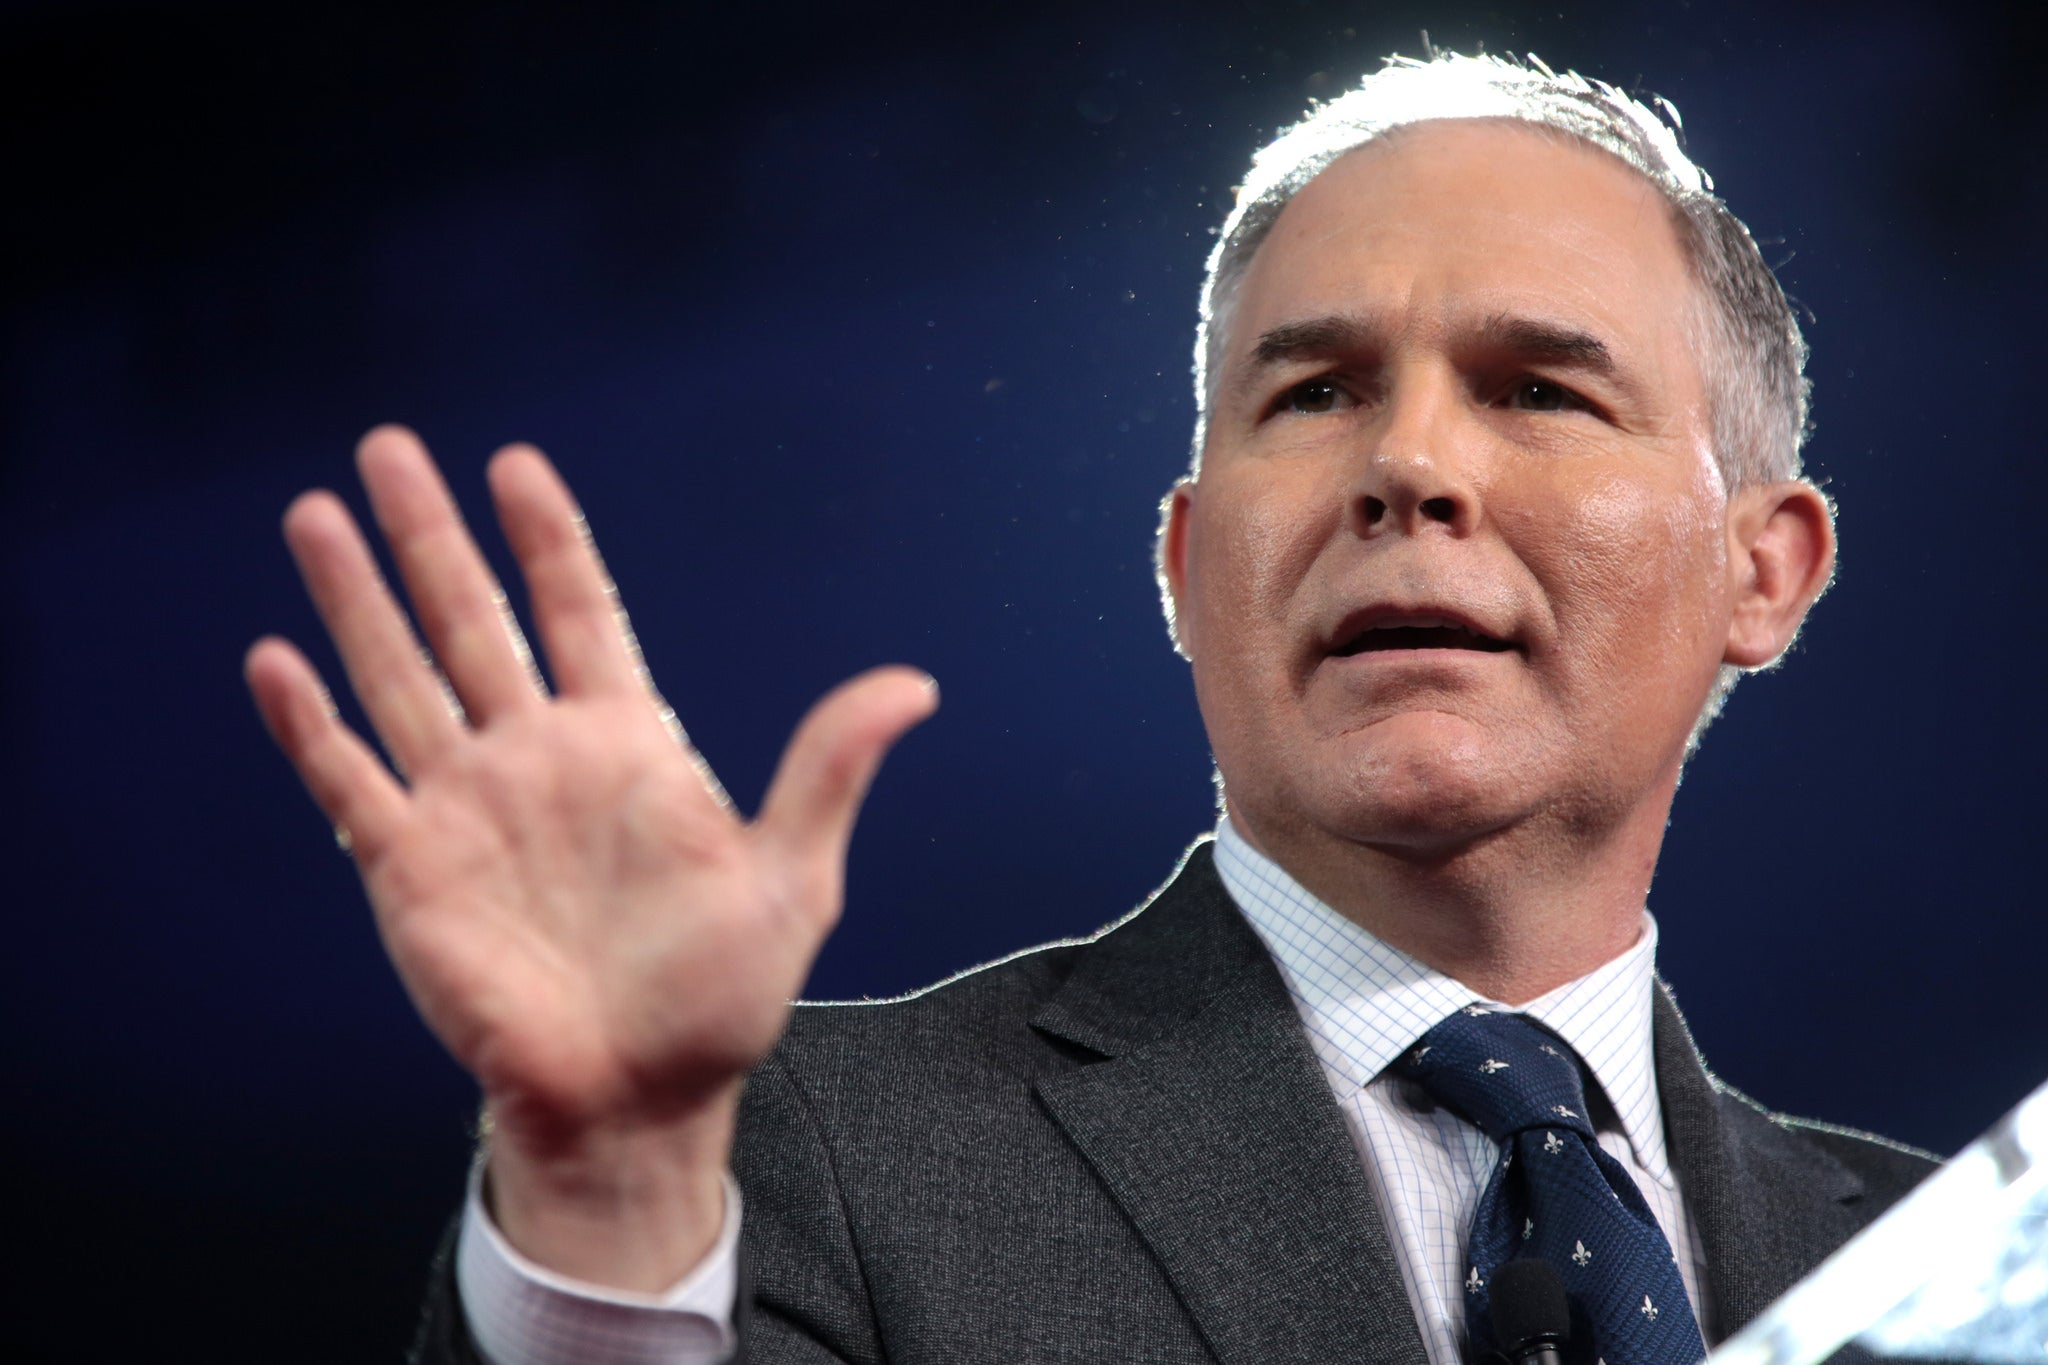 Pruitt's replacement won't be any better for the EPA